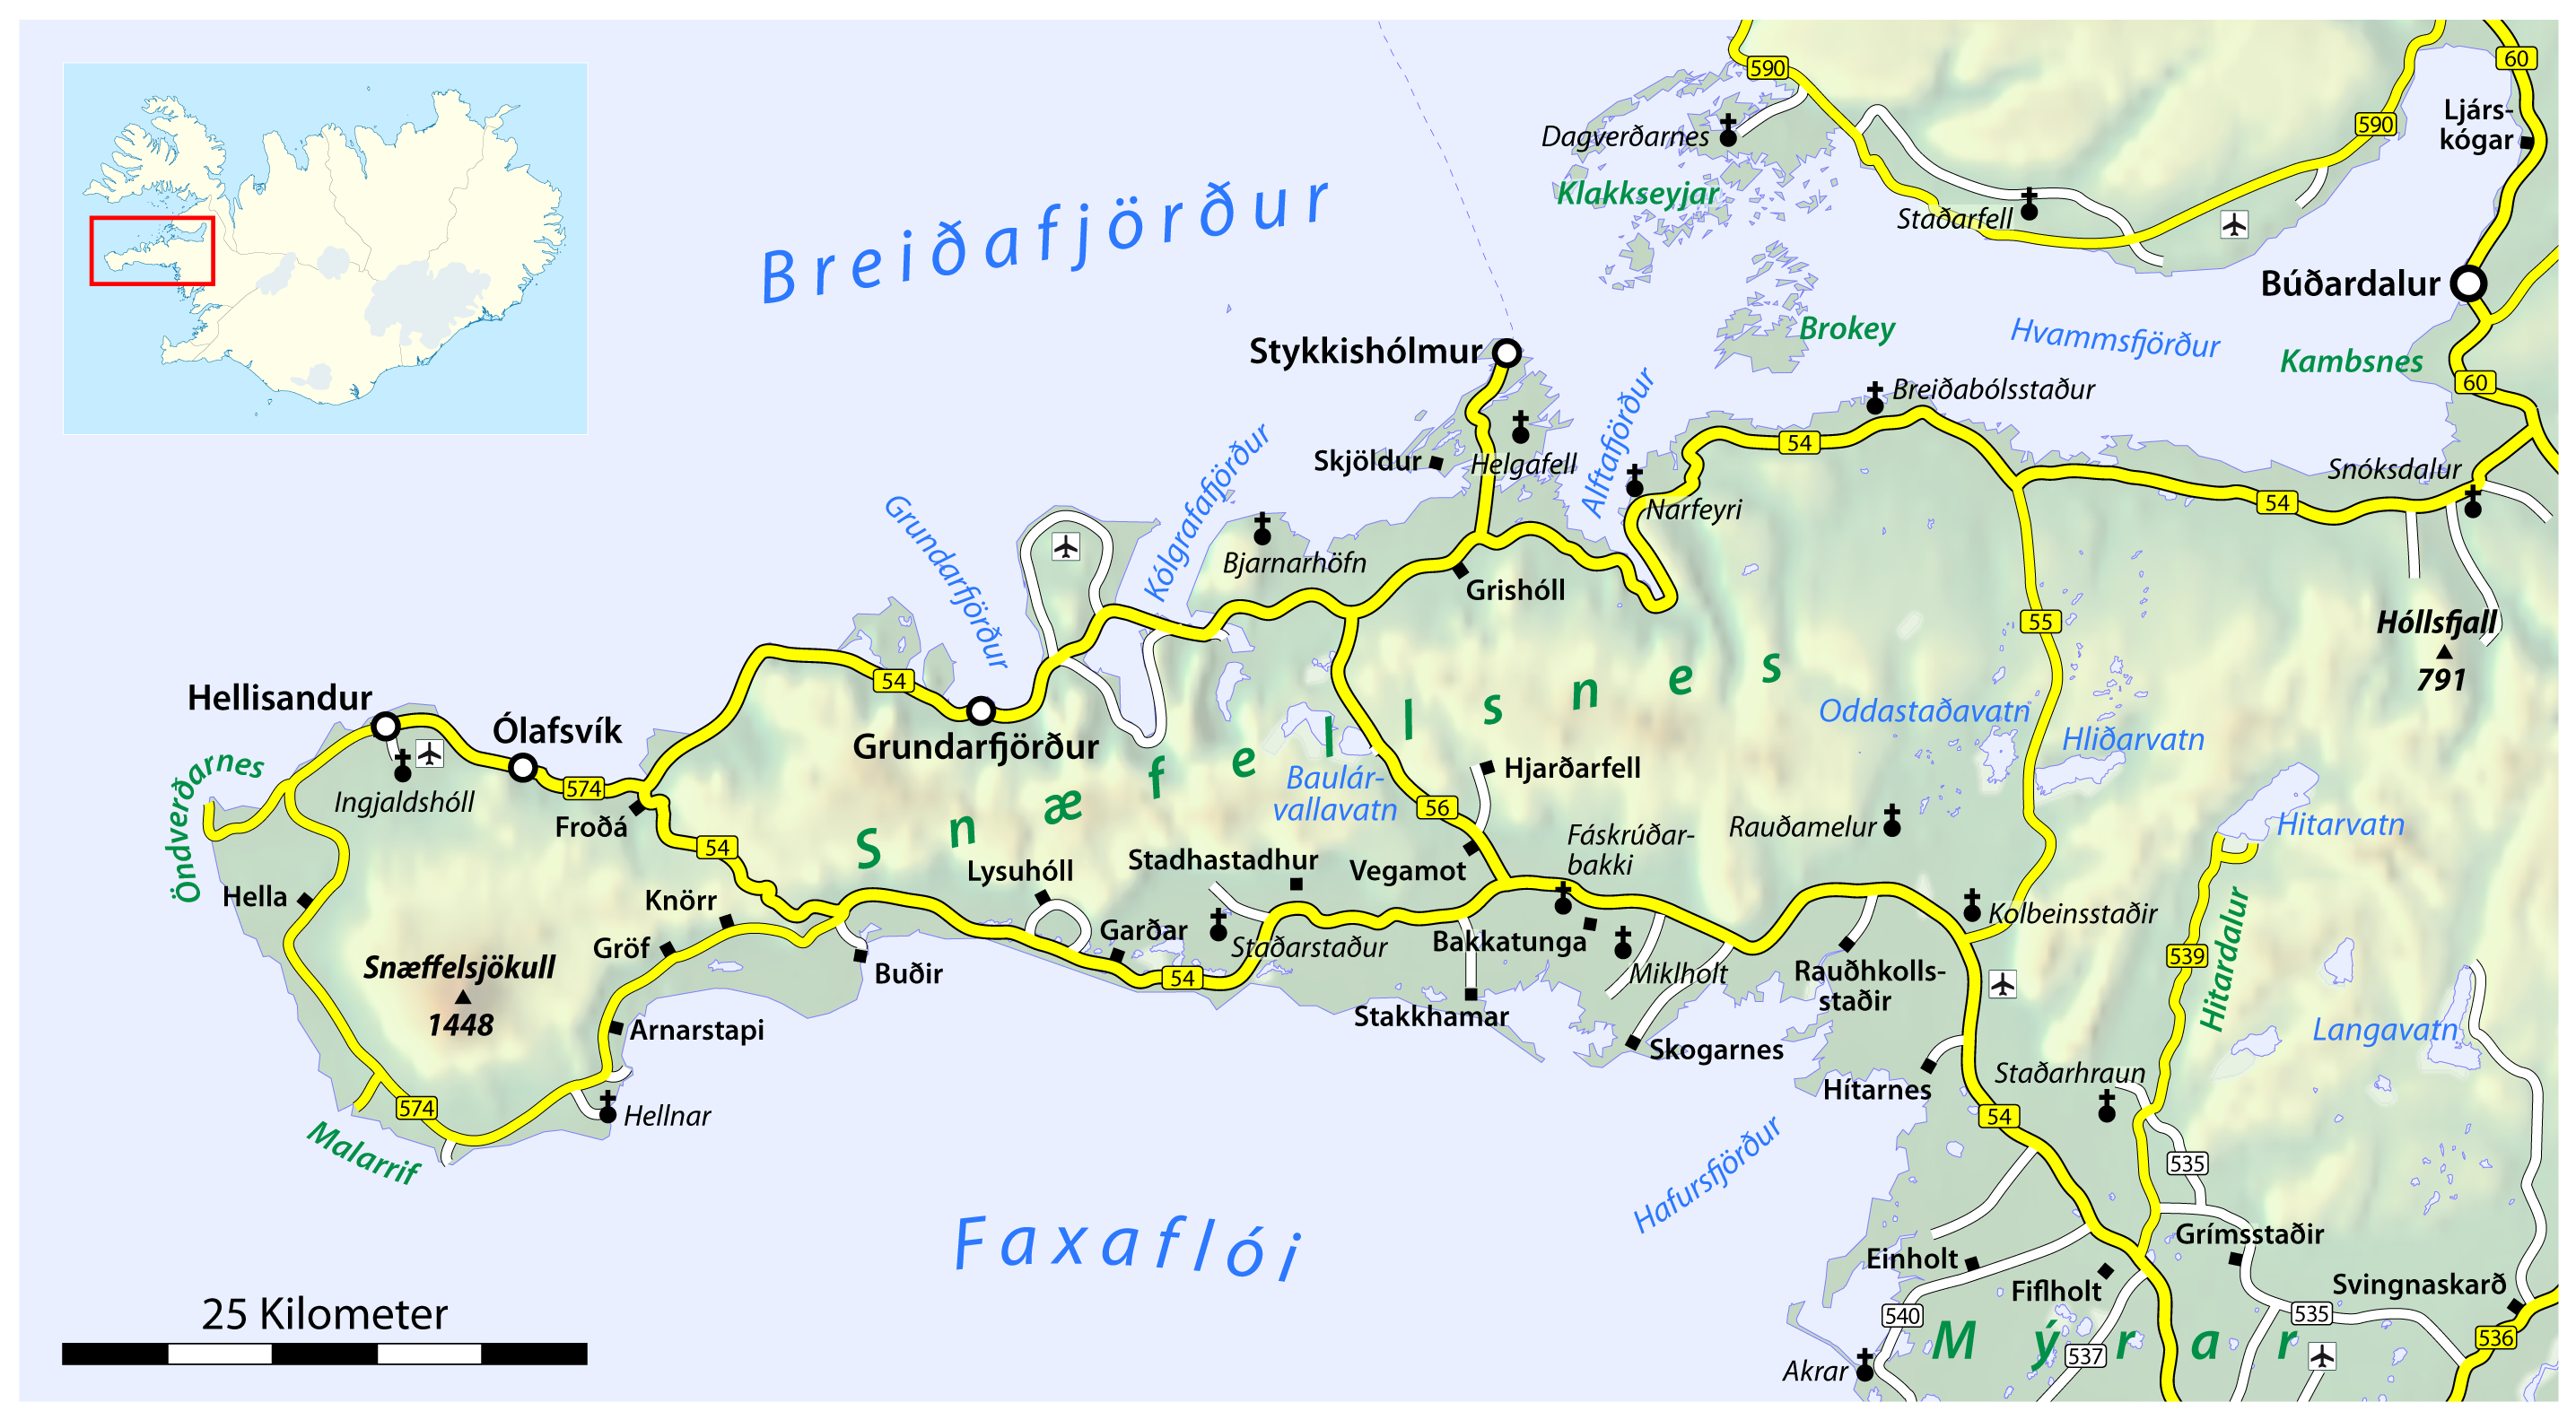 https://upload.wikimedia.org/wikipedia/commons/6/63/Map_of_the_Sn%C3%A6fellsnes_peninsula.png